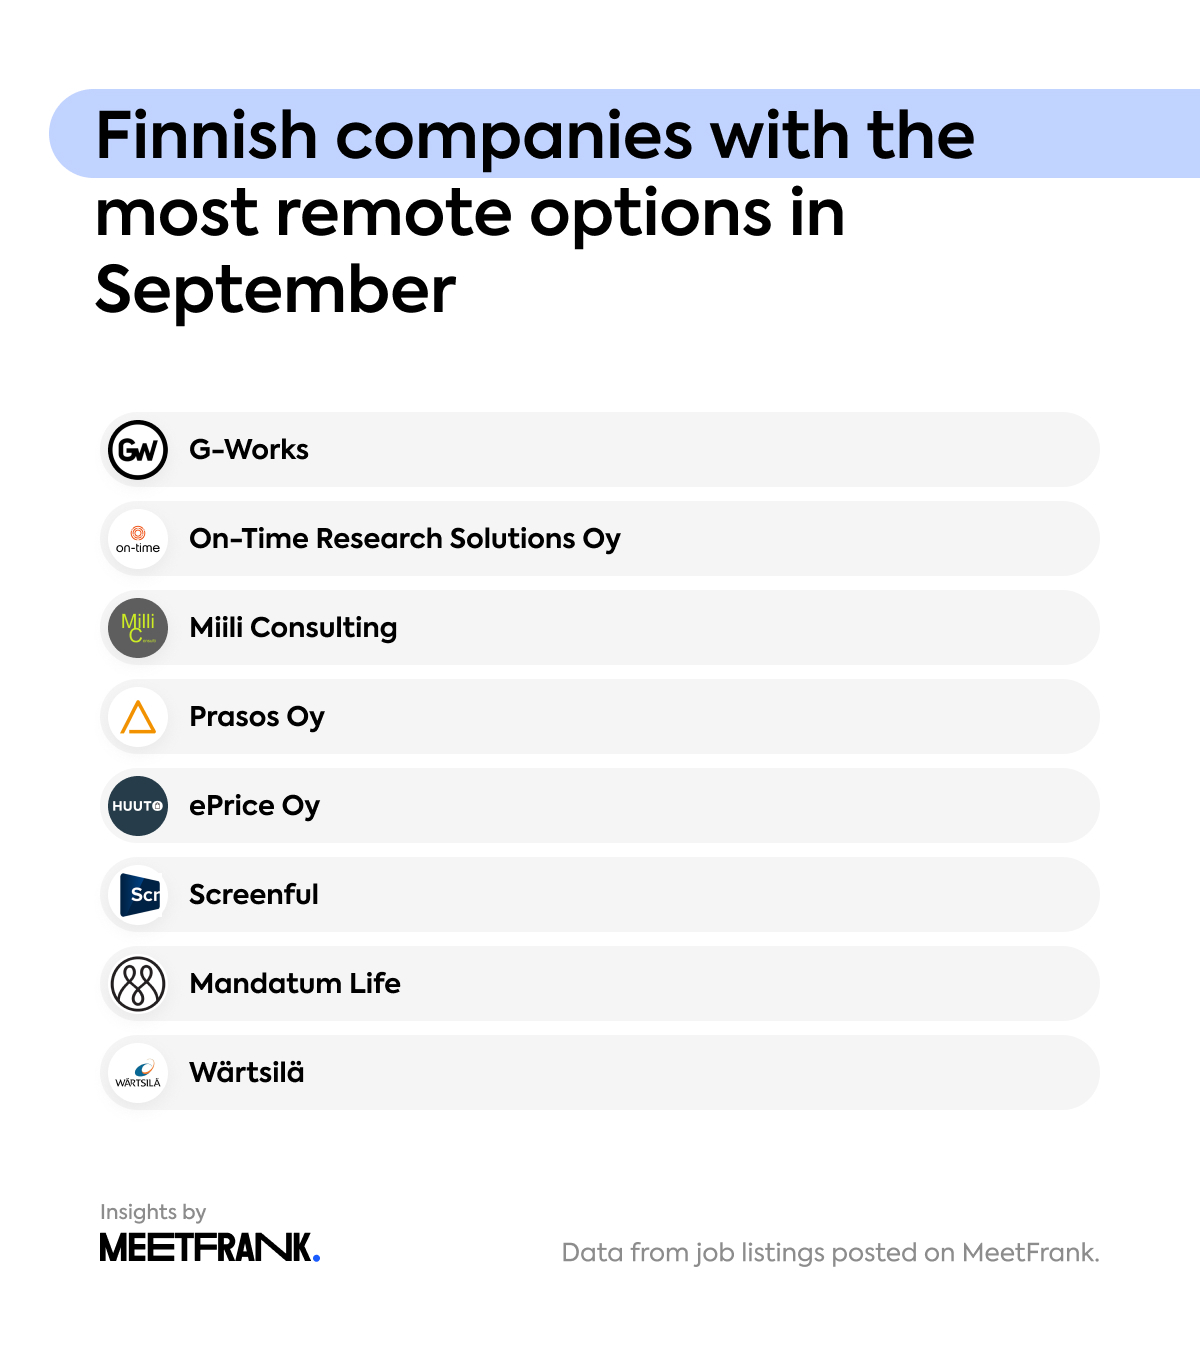 companies with the most remote options in Finland